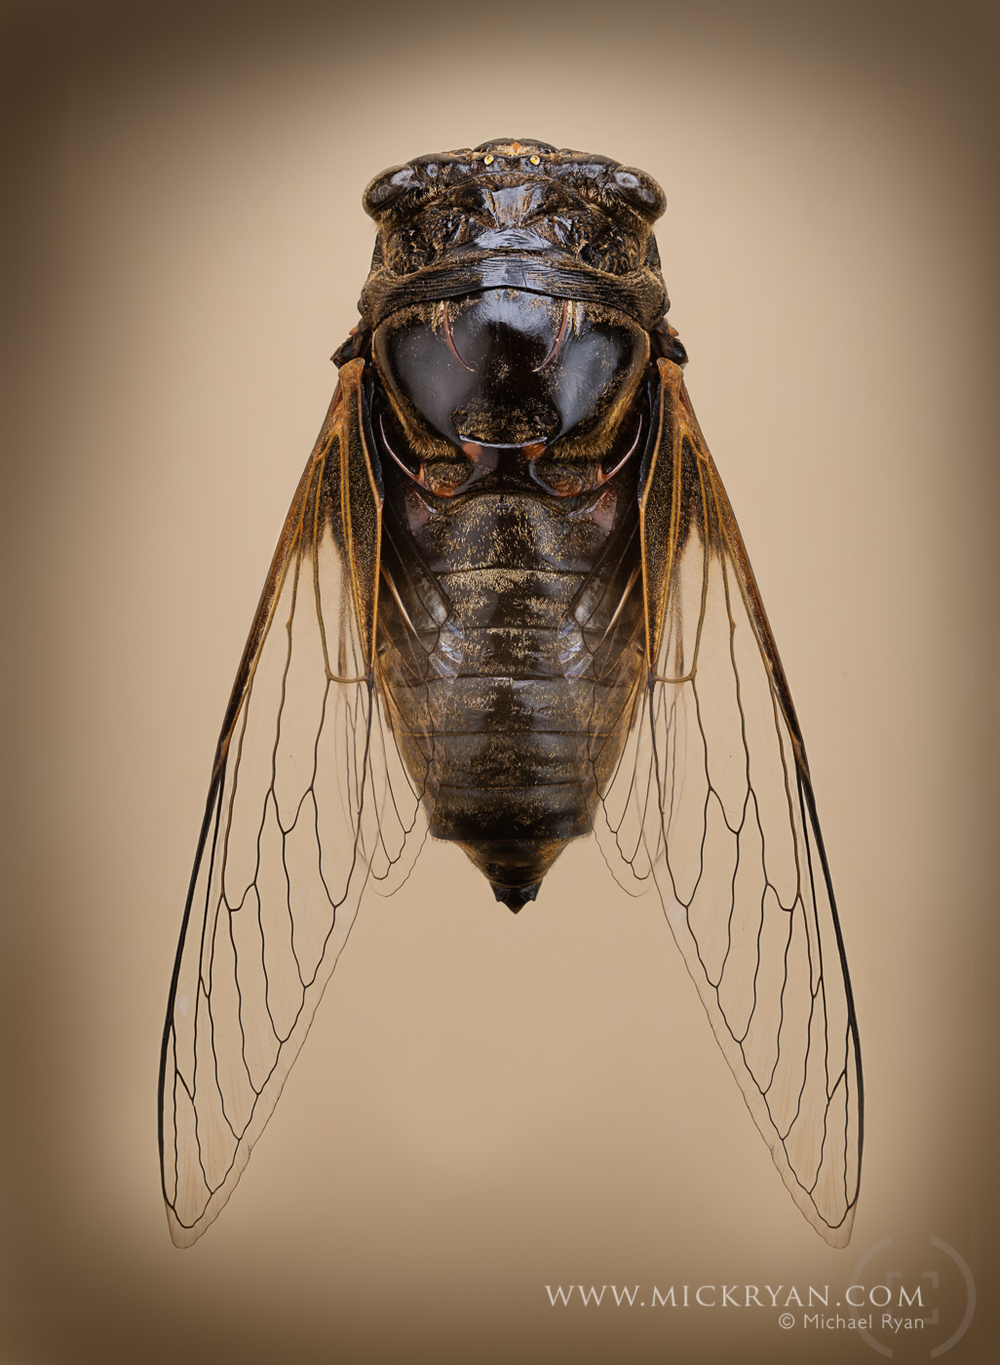 Cicada wings spread-3195-Edit.jpg